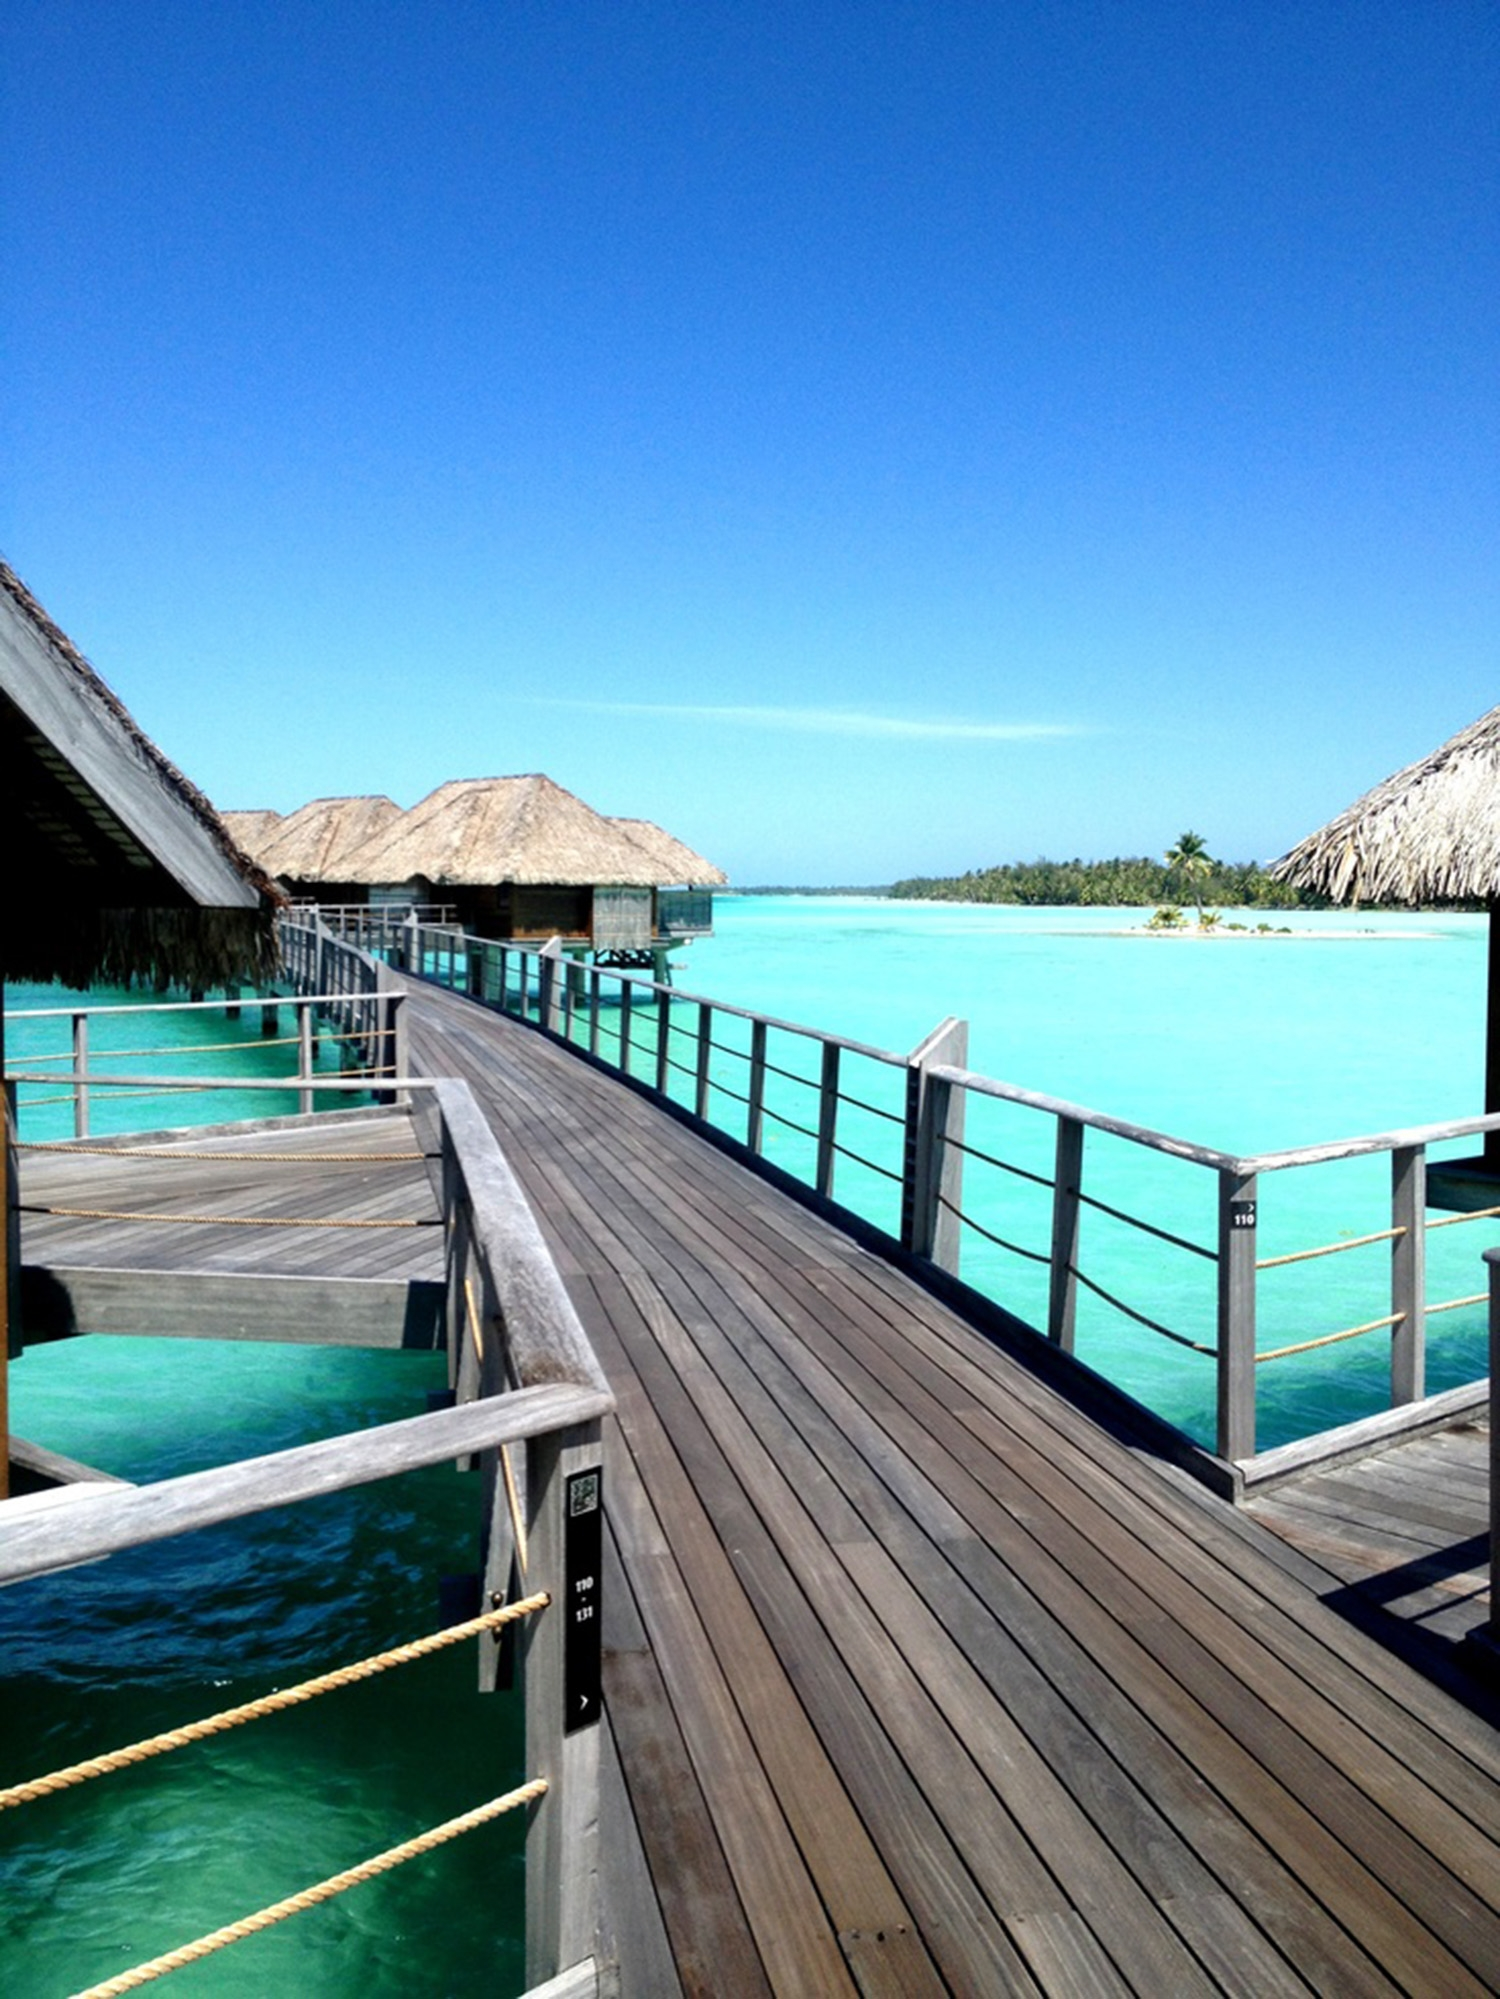 Walking along a wooden walkway connecting a series of villas, floating above the cool blue waters of Bora Bora